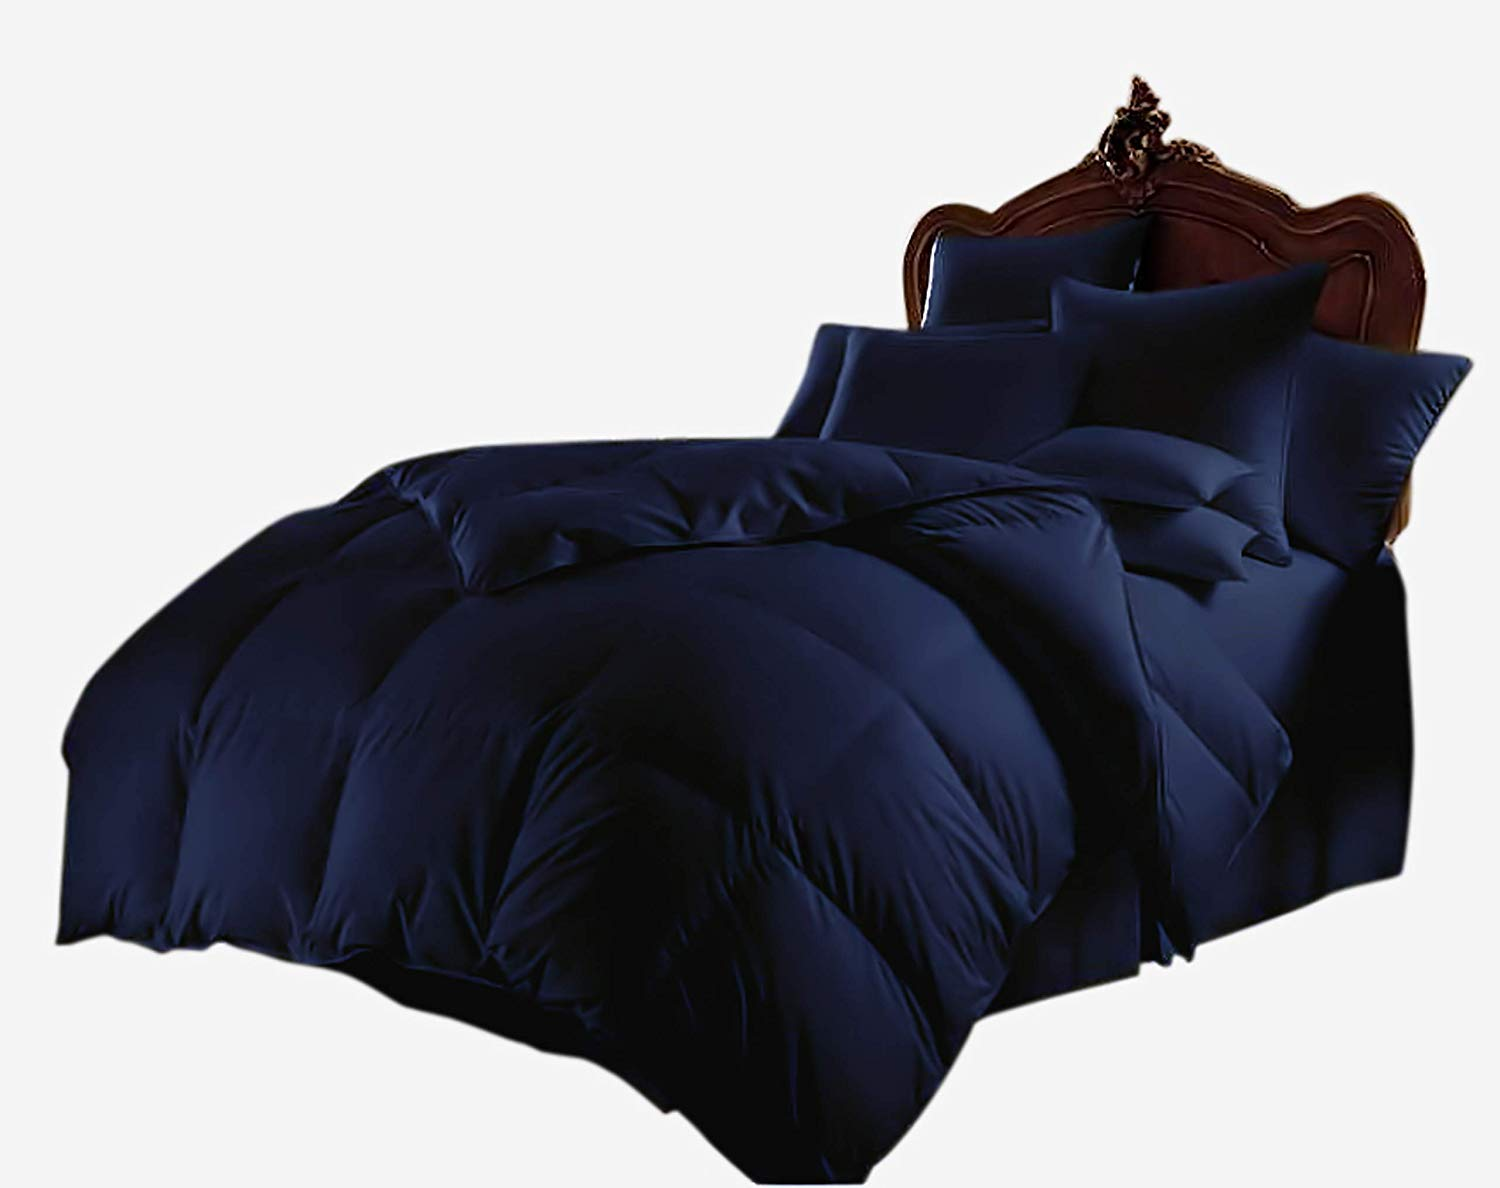 All Season Luxurious 800 Series,Luxury Goose Down Alternative Comforter, Oversize-Queen Size - Quilt 3 Pc Comforter -100% Egyptian Cotton Comforter Set, Hotel Quality 600 GSM,Navy Blue, (90''x98'') by Bellacasa creations